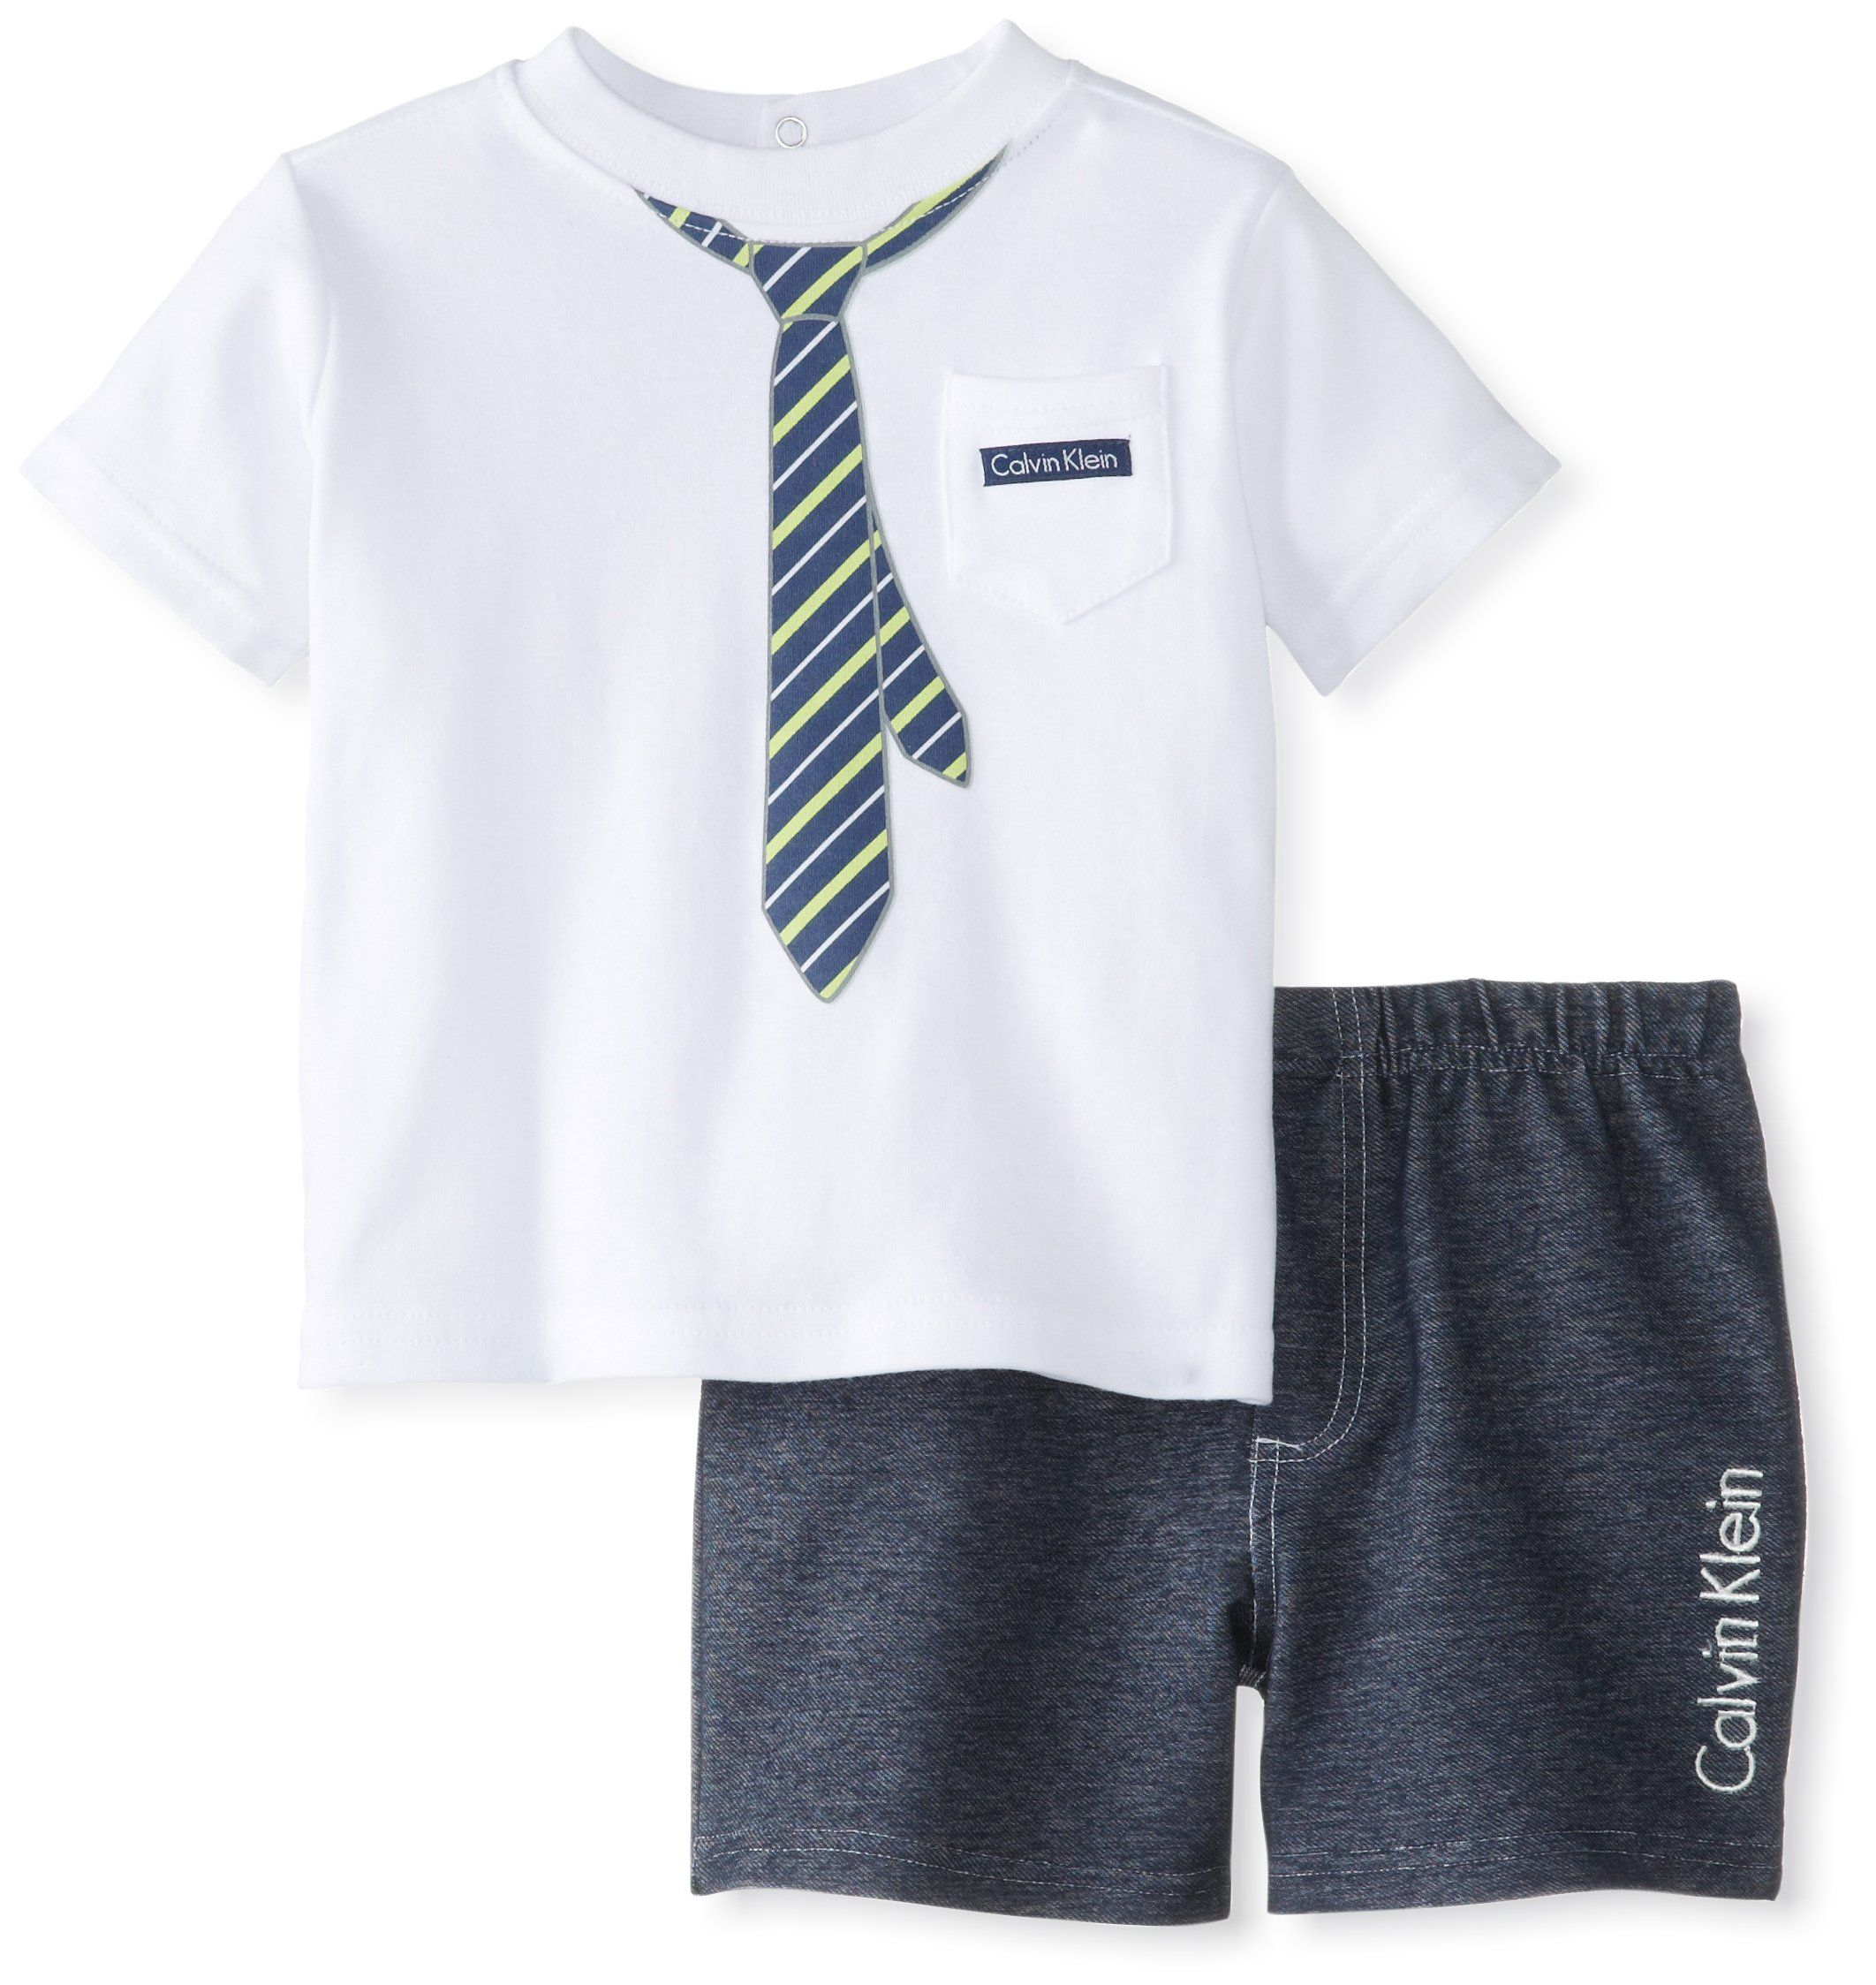 Calvin Klein Baby Boys Infant Tee with Short Tie White 18 Months